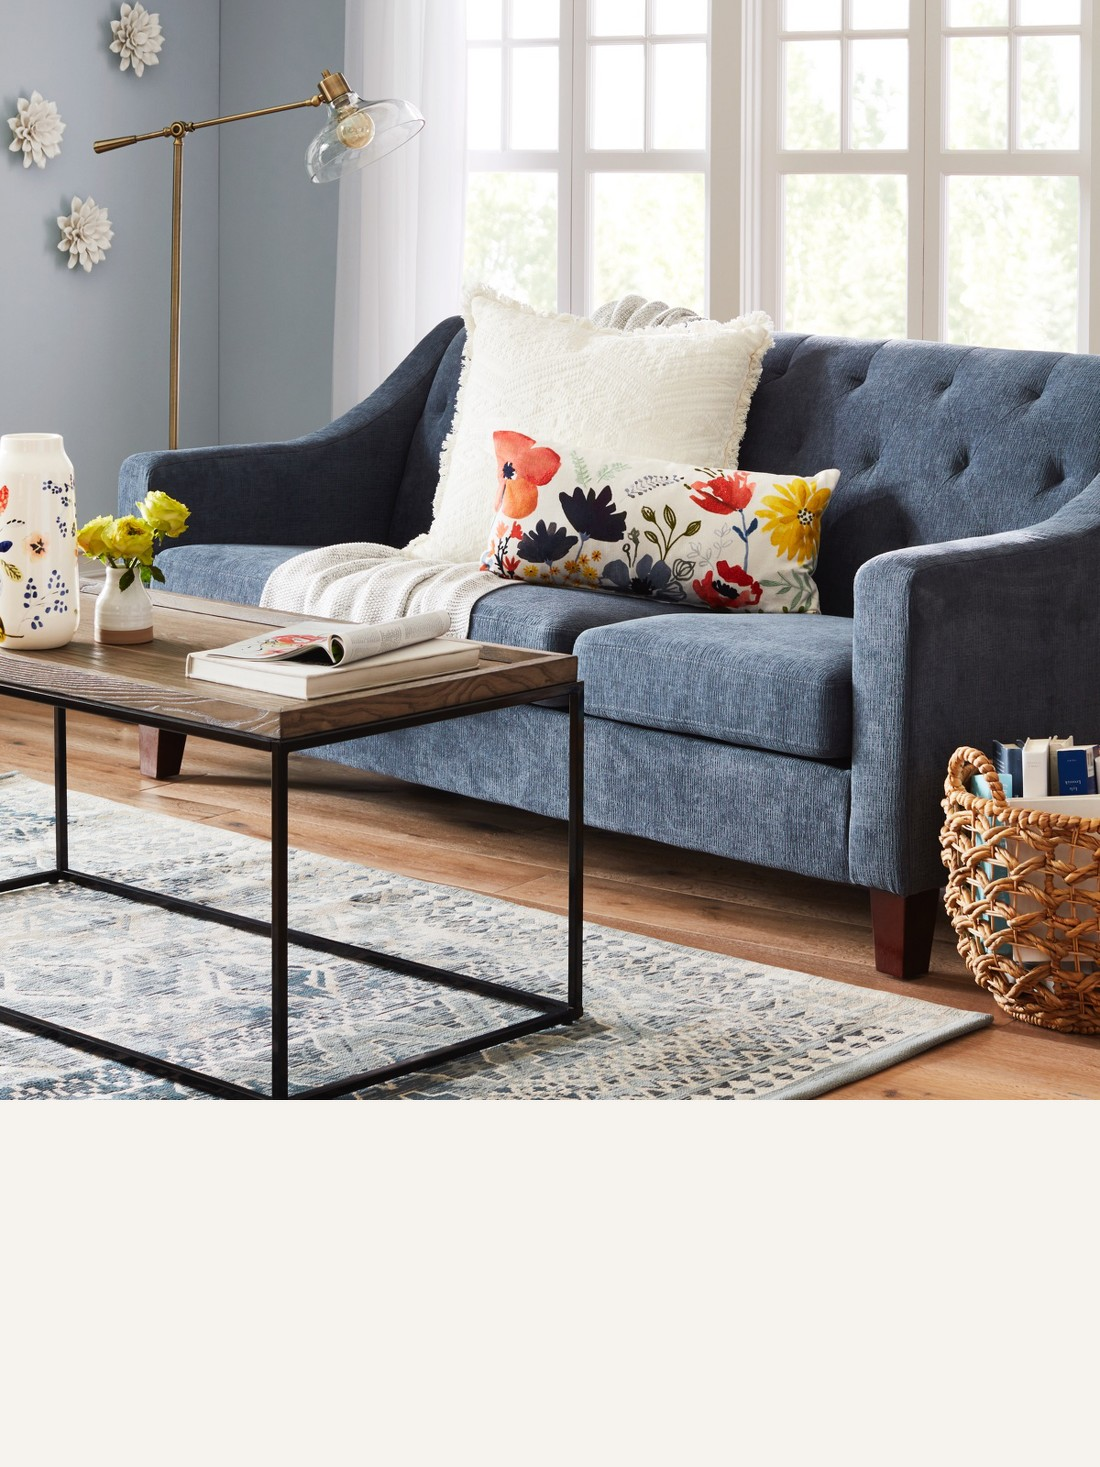 76 sofas are great for small spaces while sofas 89 bigger can anchor a larger room browse sofas